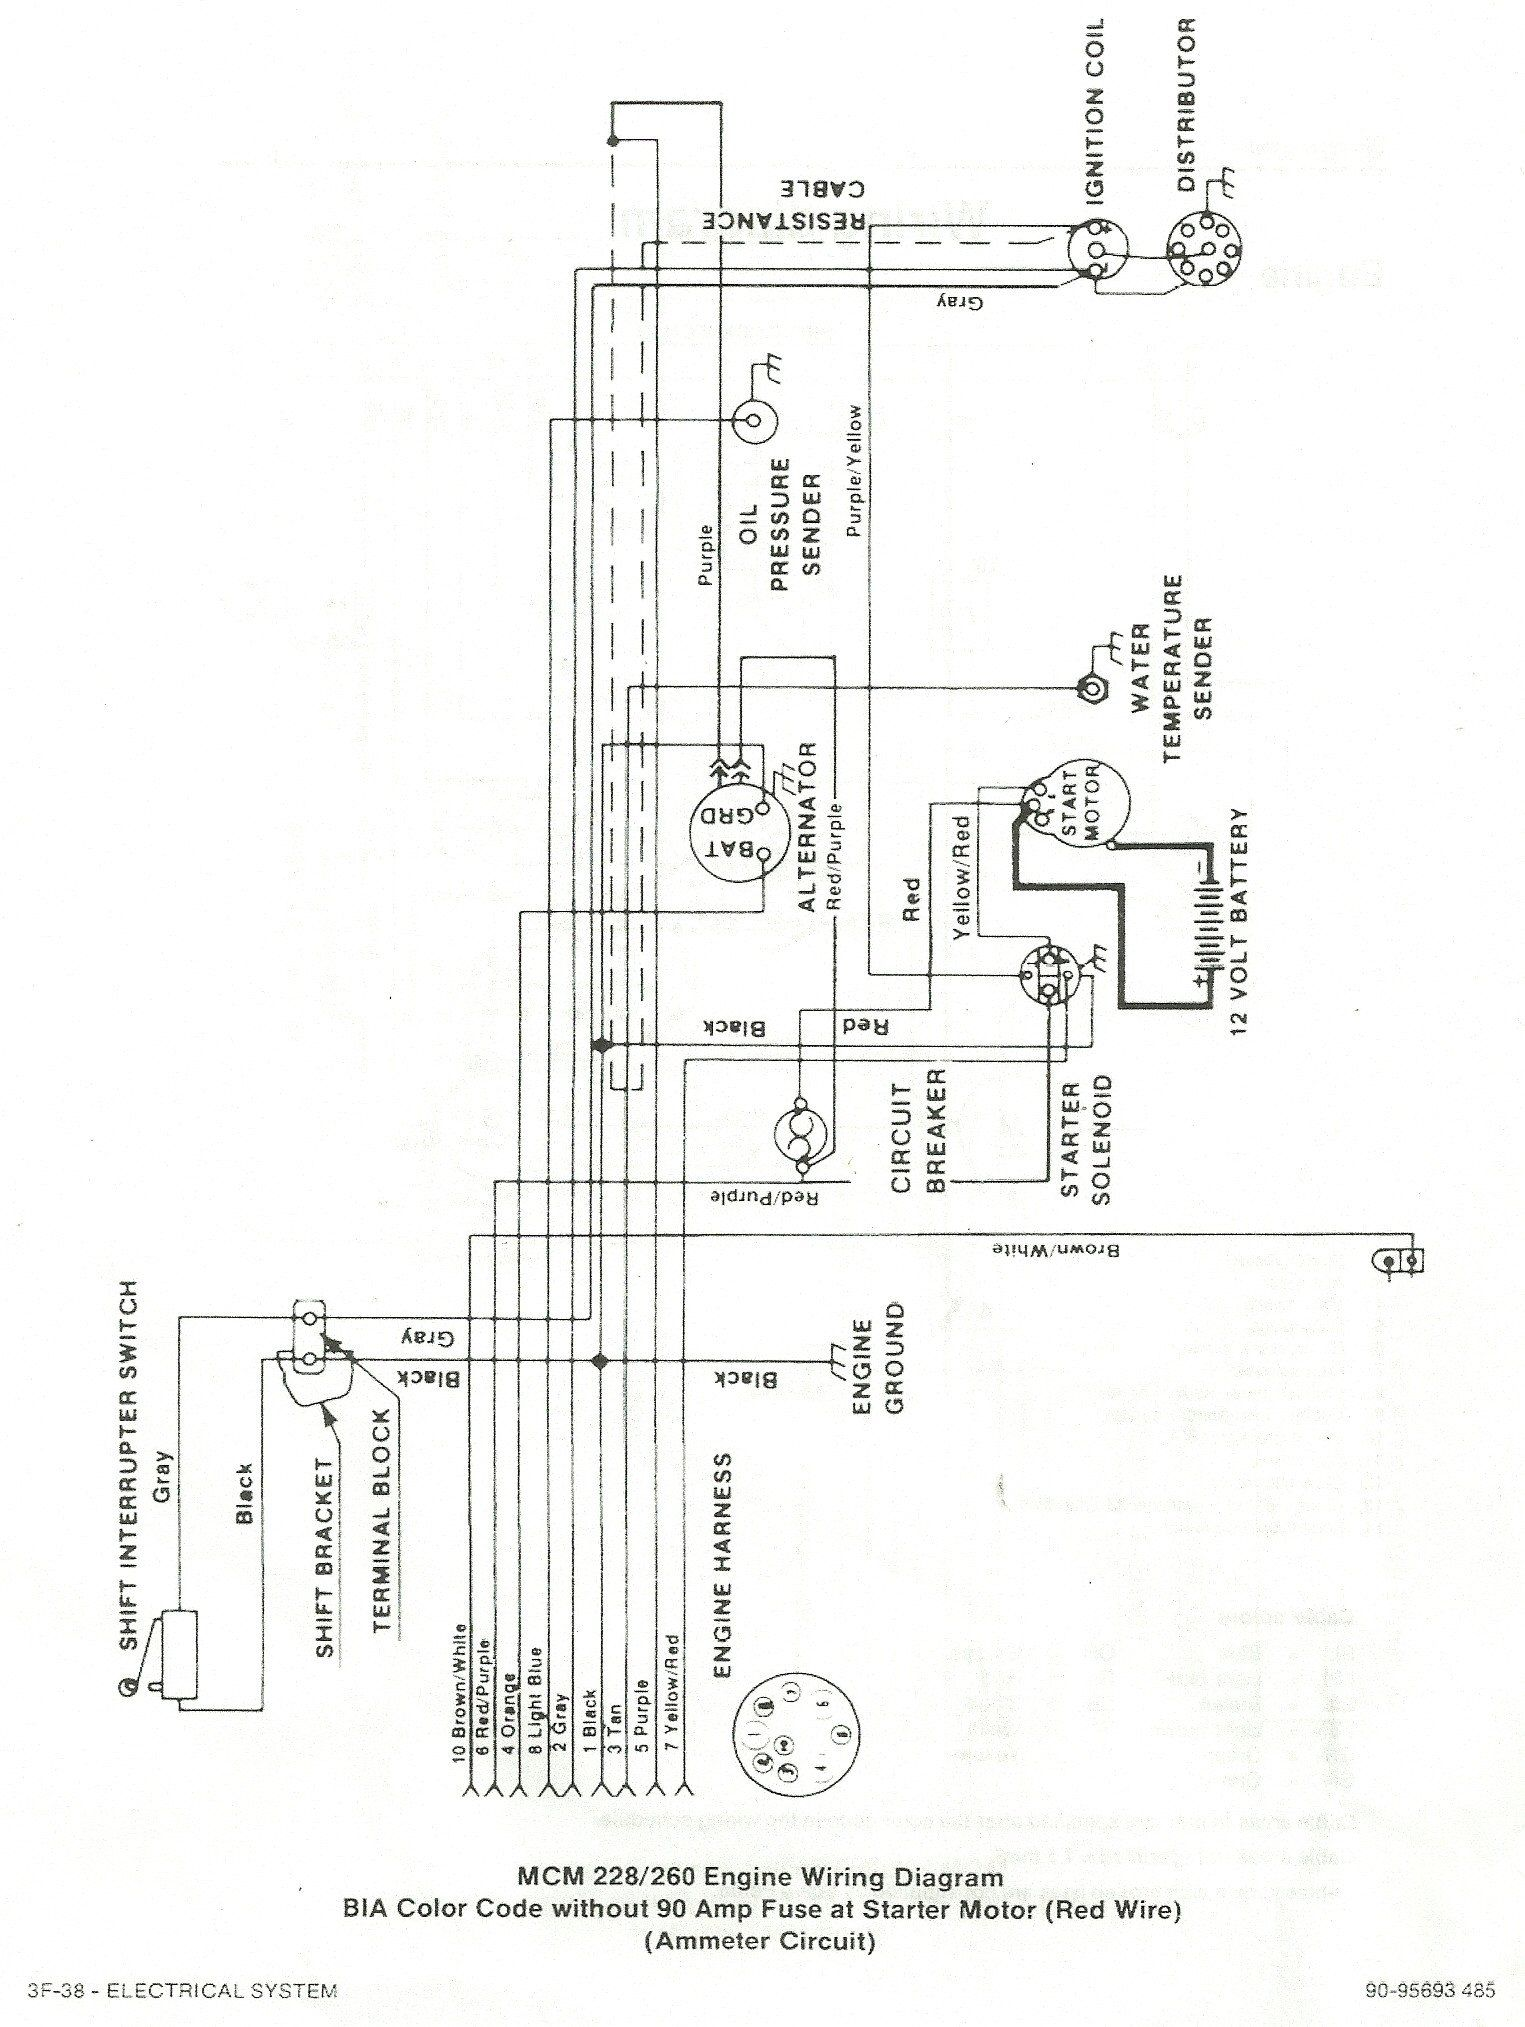 hight resolution of 7 4 mercruiser engine diagram wiring diagram toolbox7 4 mercruiser wiring diagram wiring diagrams trigg 7